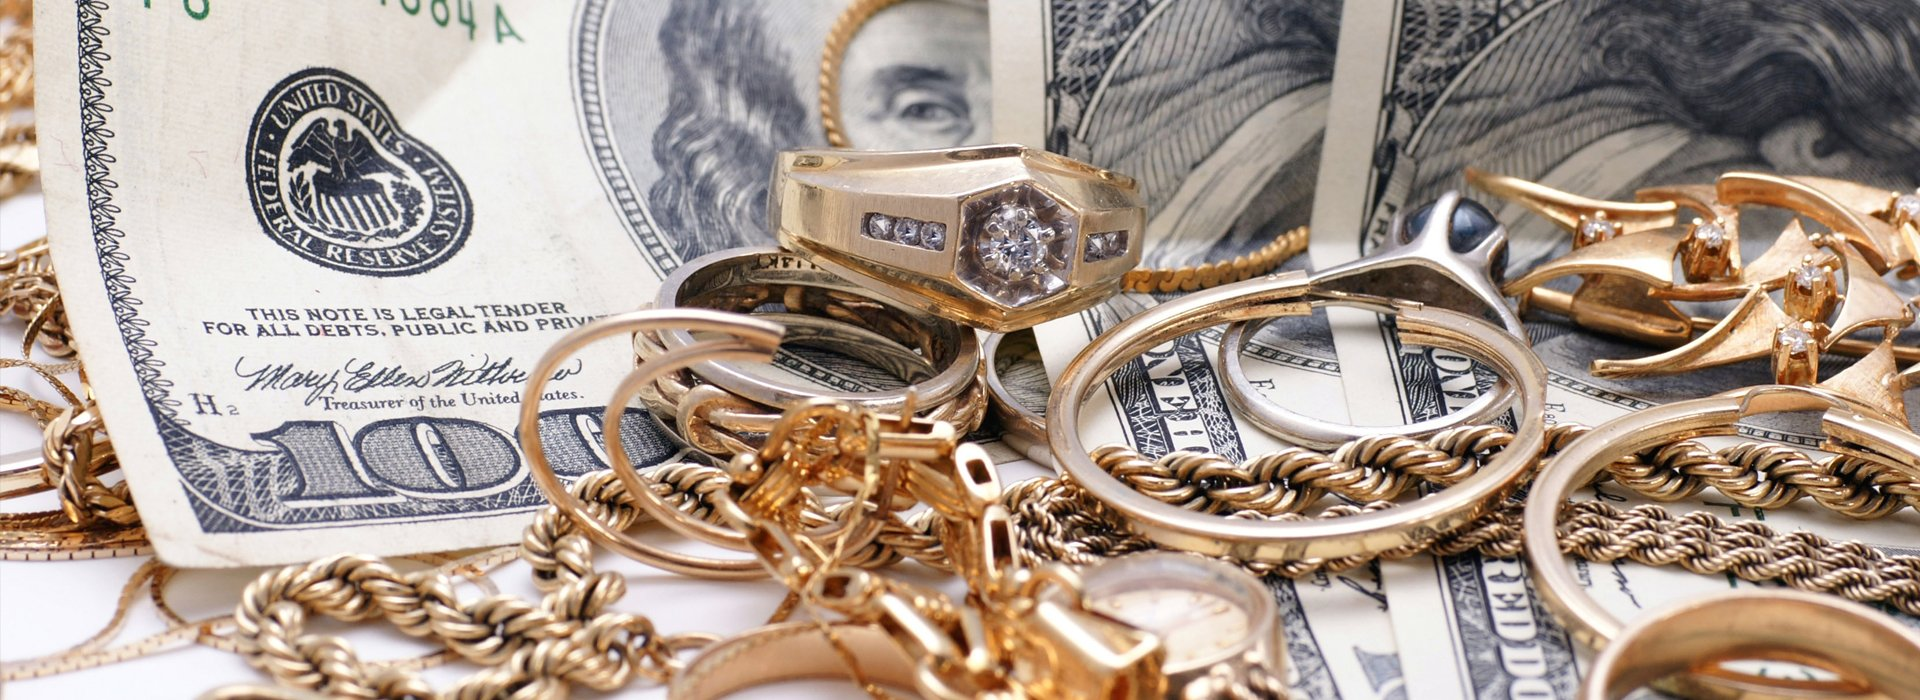 Cash and jewelry